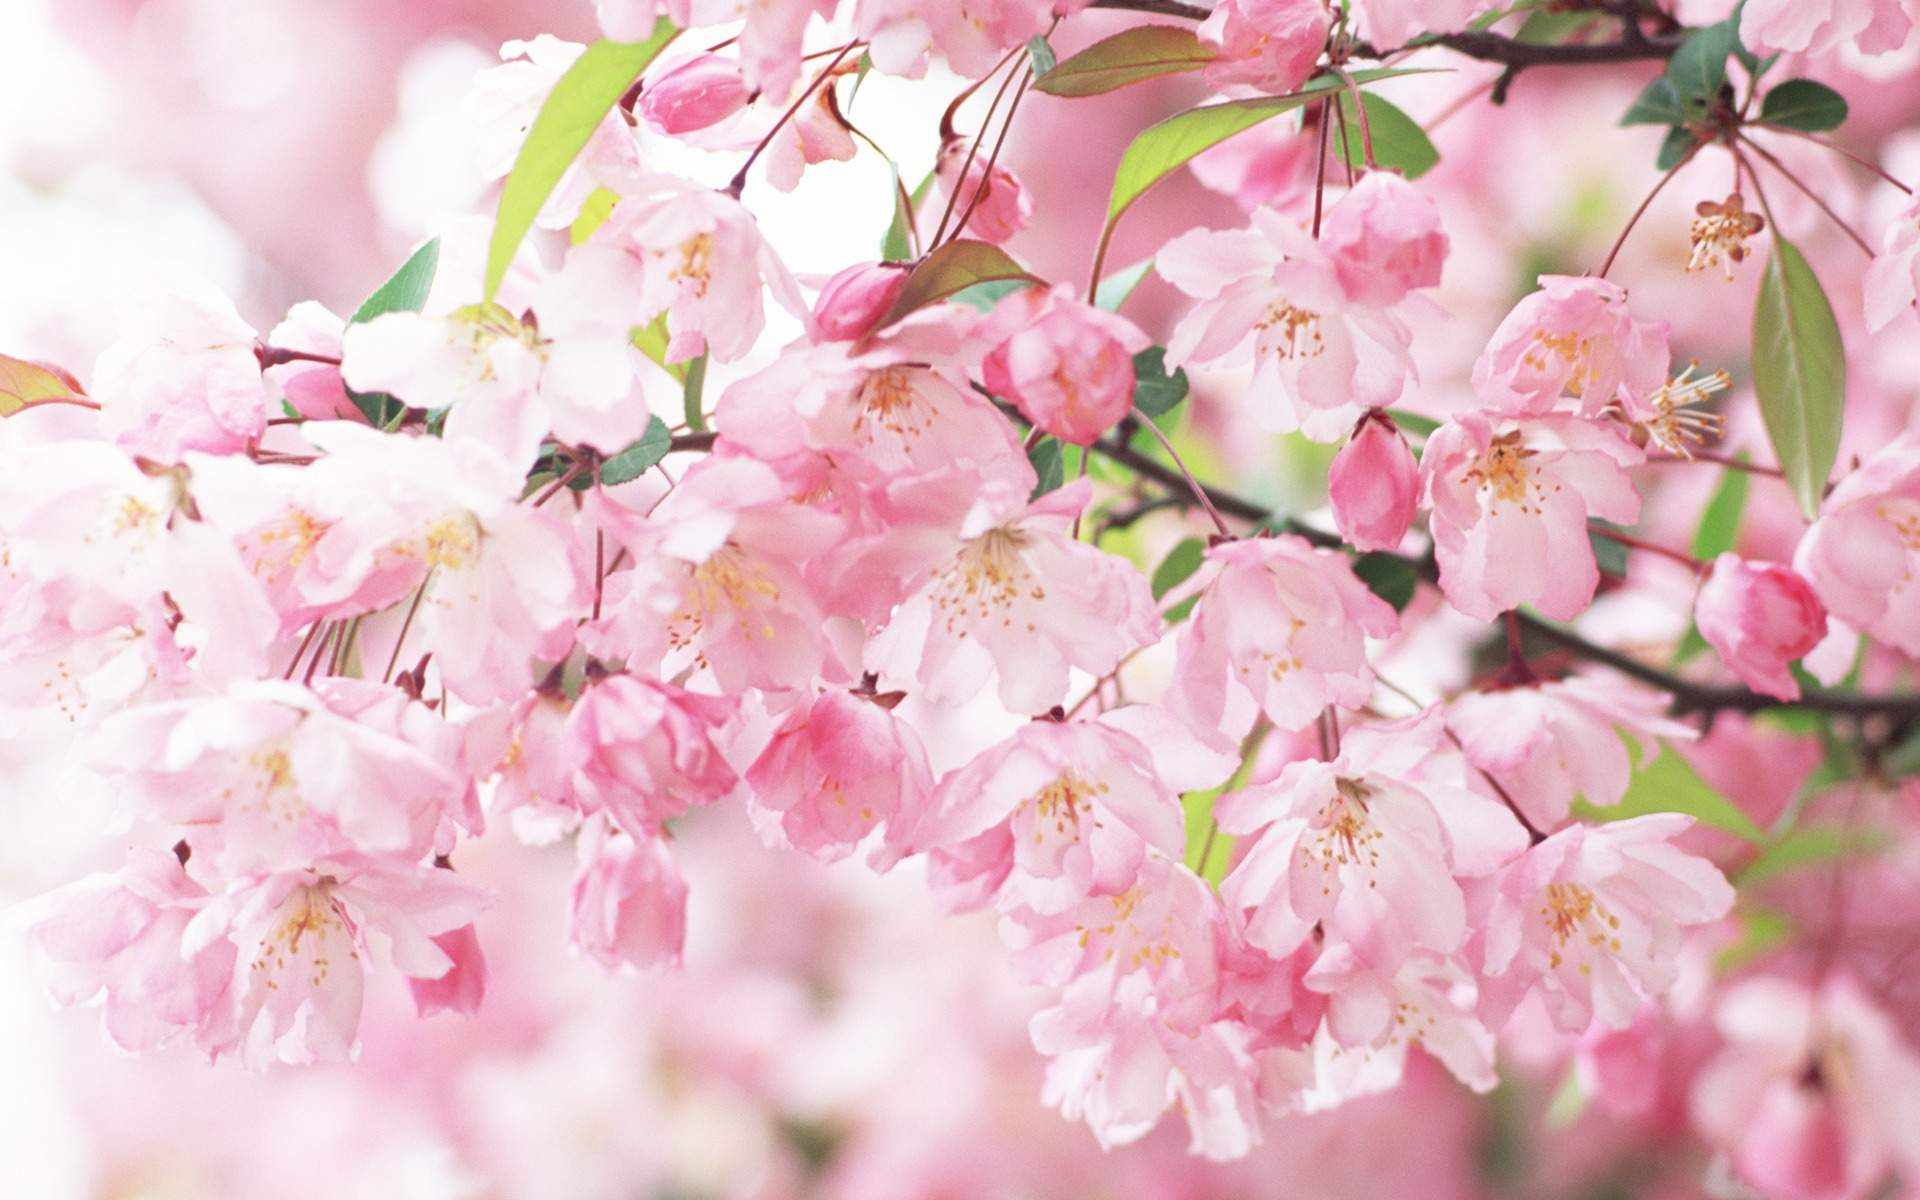 Pink Flowers Tumblr Hd Images 3 HD Wallpapers